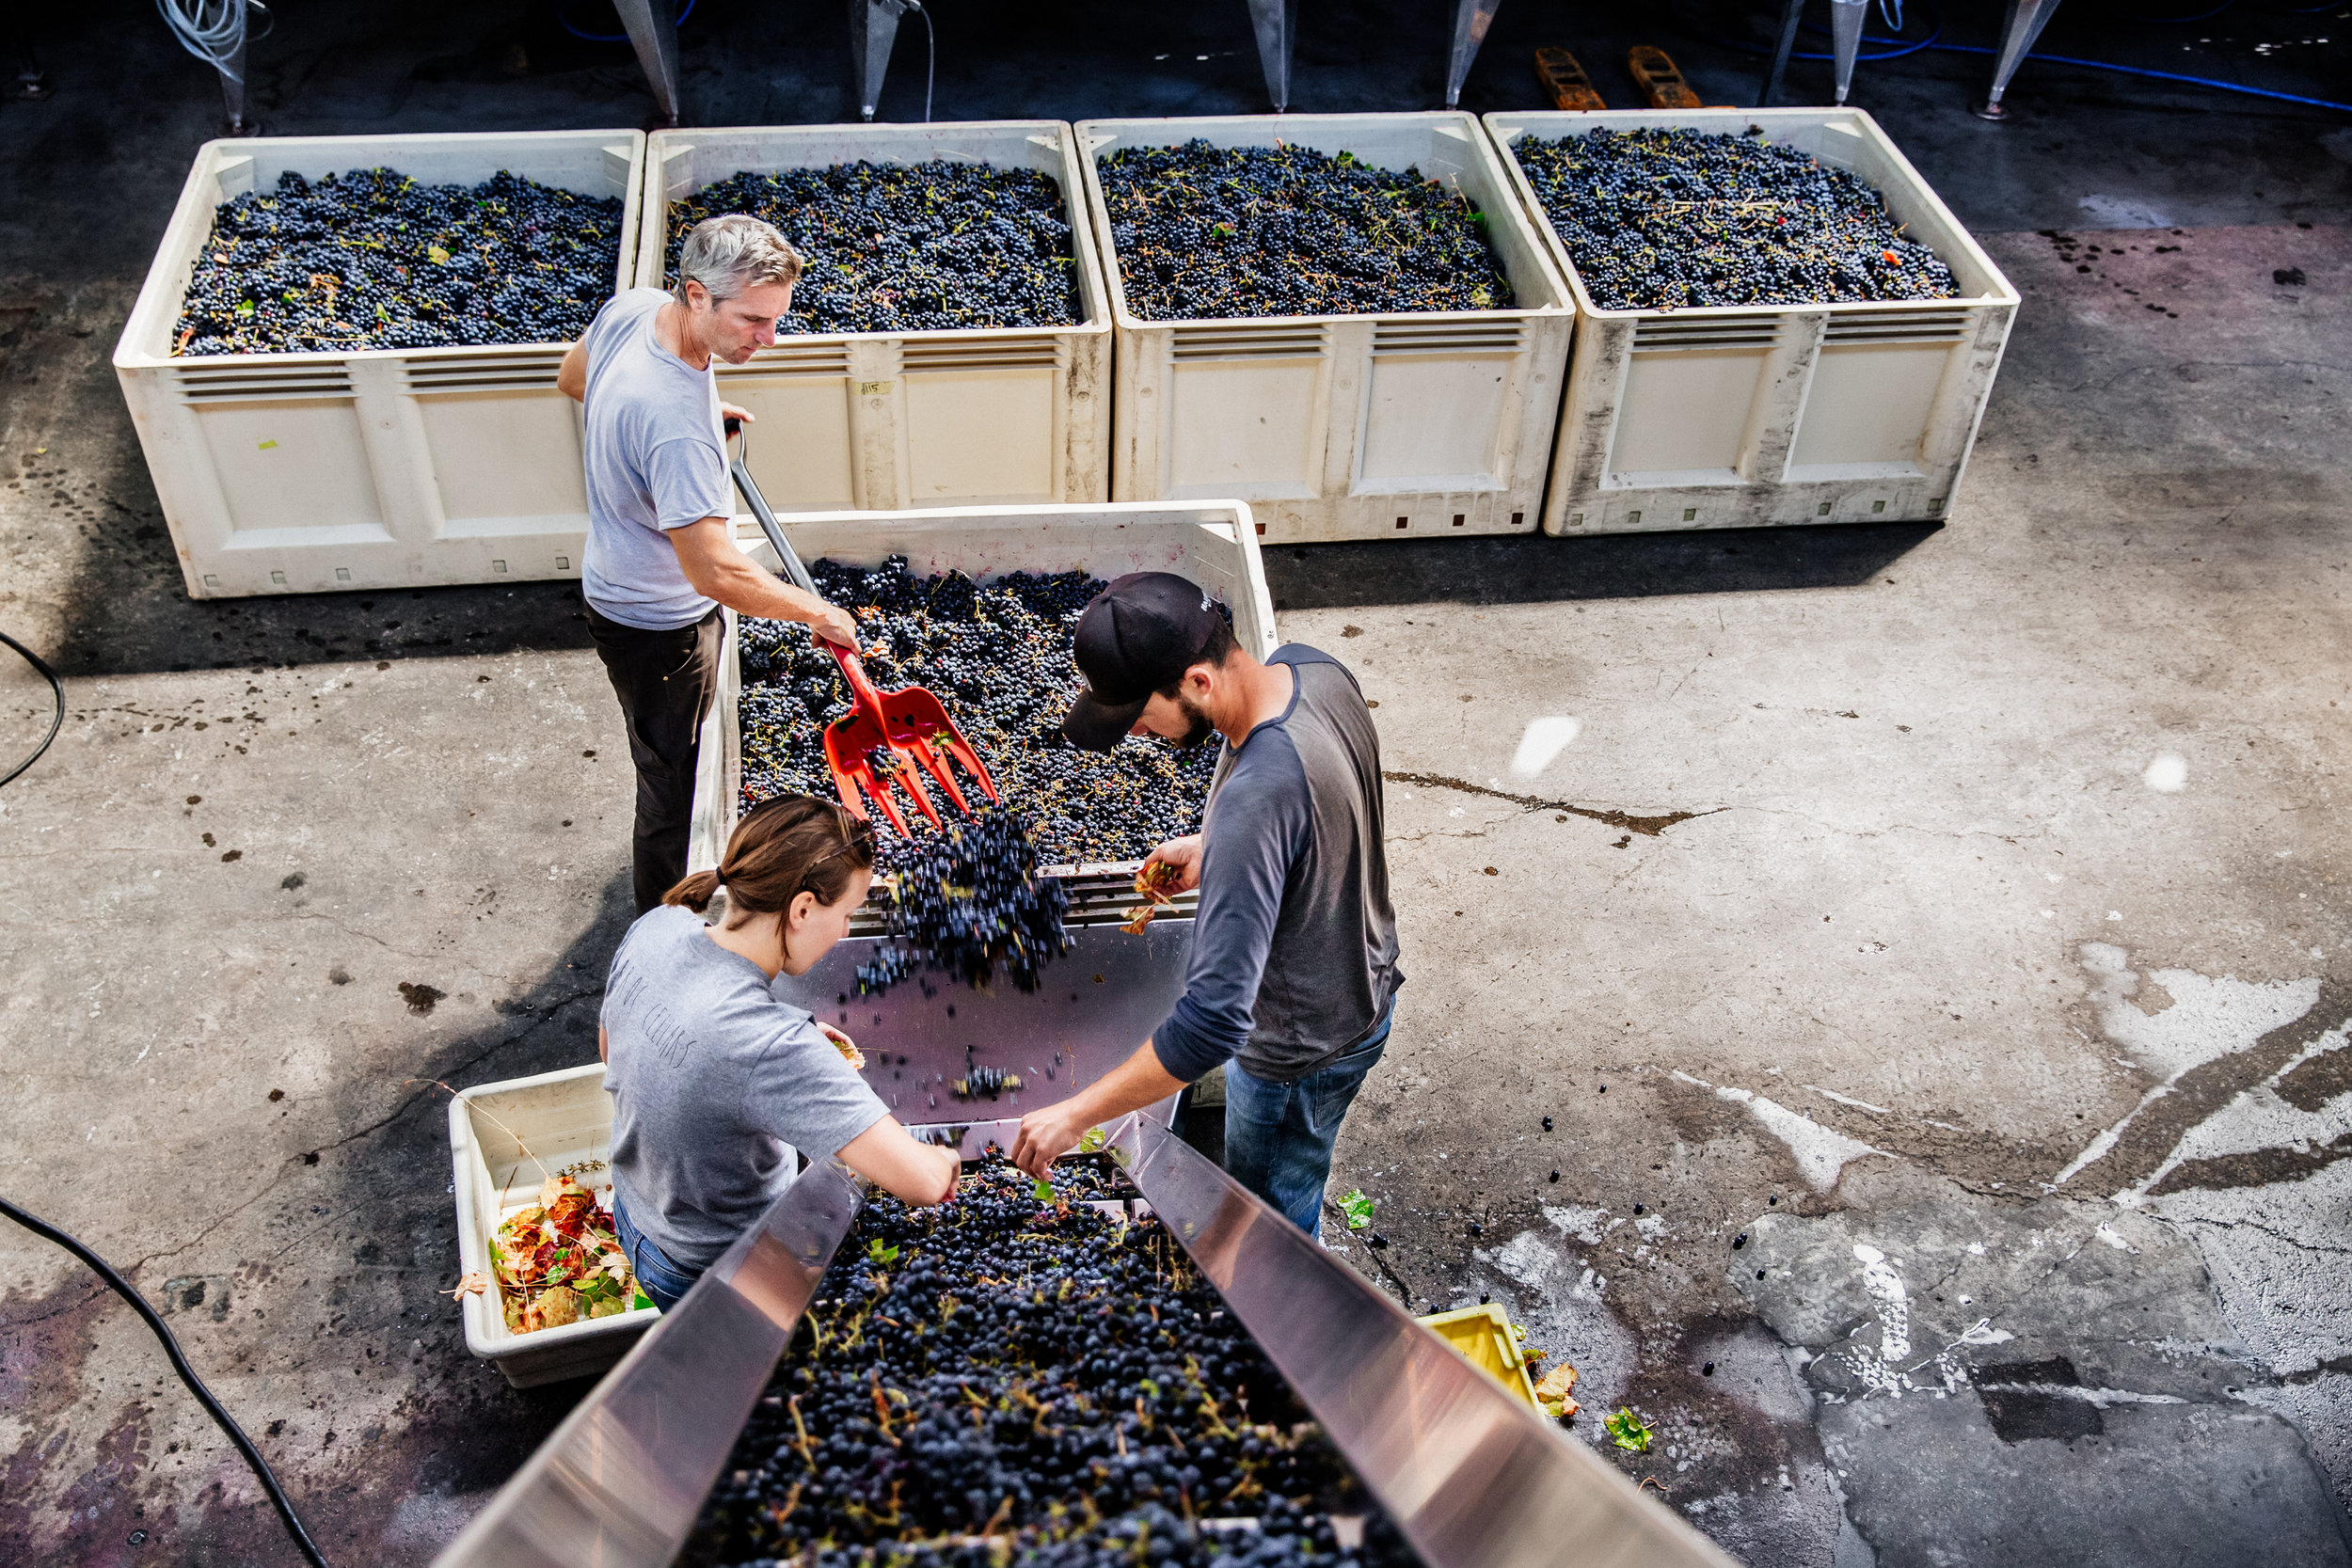 Workers sort grapes and pull leaves at an urban winery in the East Bay.